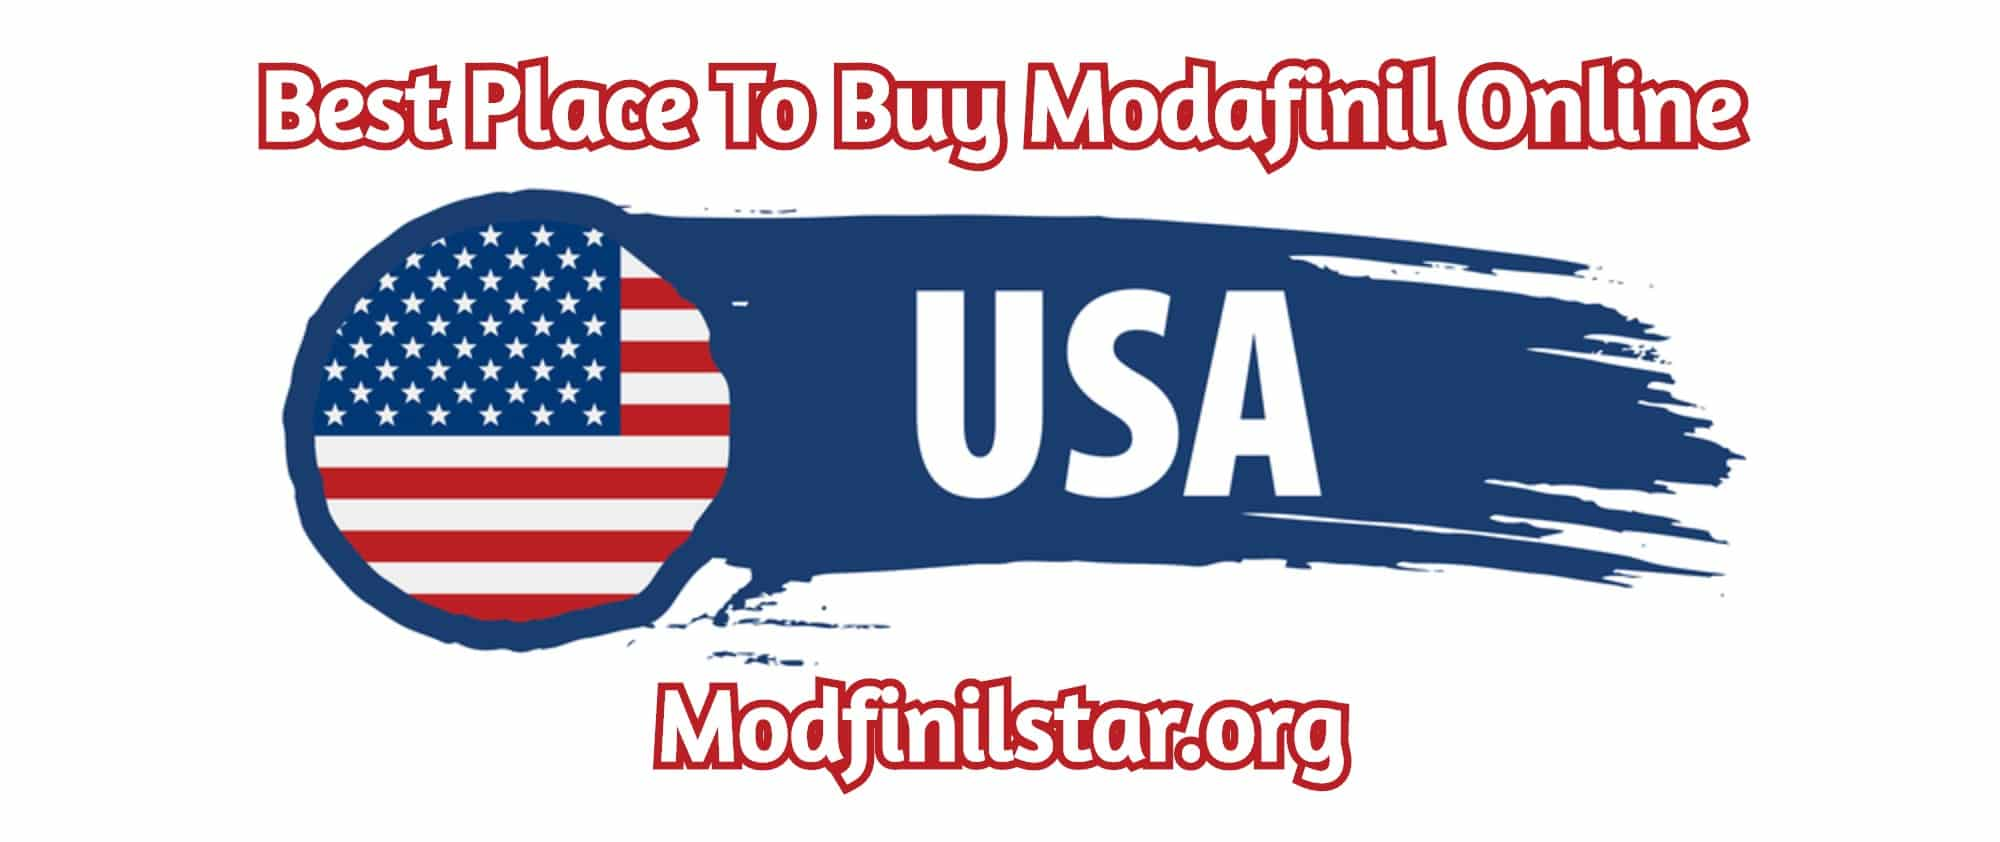 Best Place to Buy Modafinil Online in USA (1)